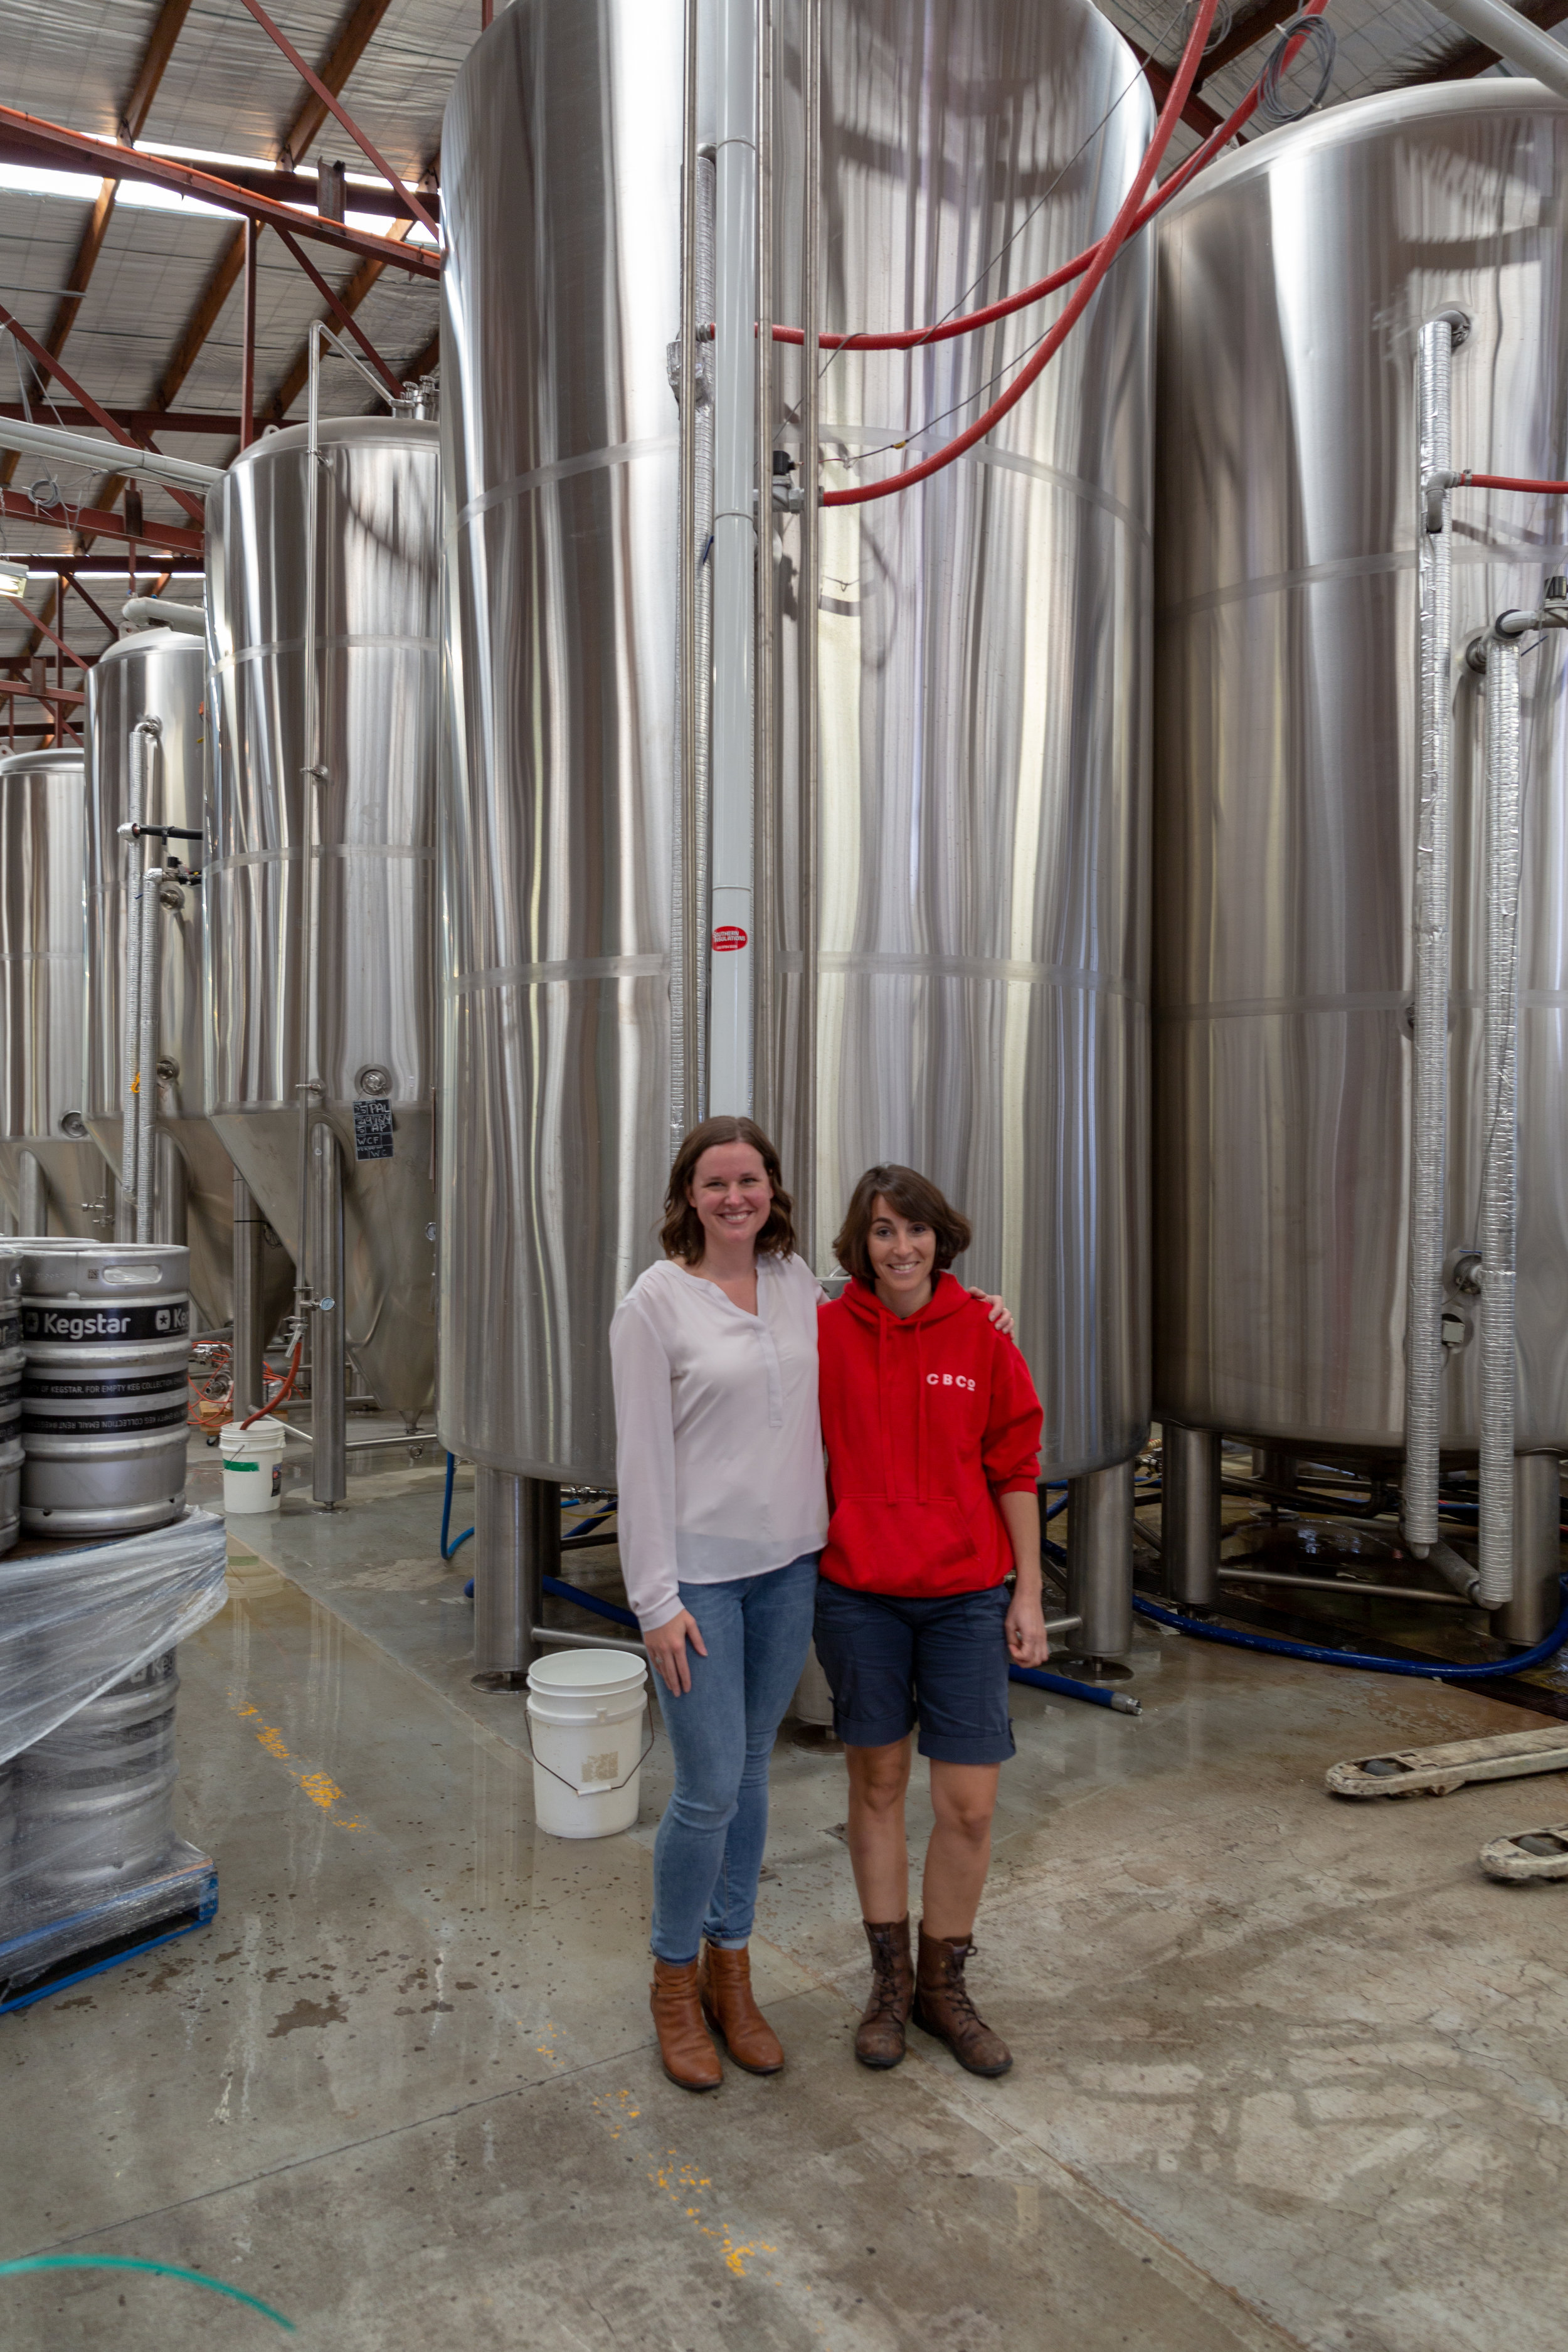 Flora and I hanging out by Colonial Brewing Co.'s giant tanks. To find out more about this delightful brewery, check out their website. - Image taken by Paul Gablonski